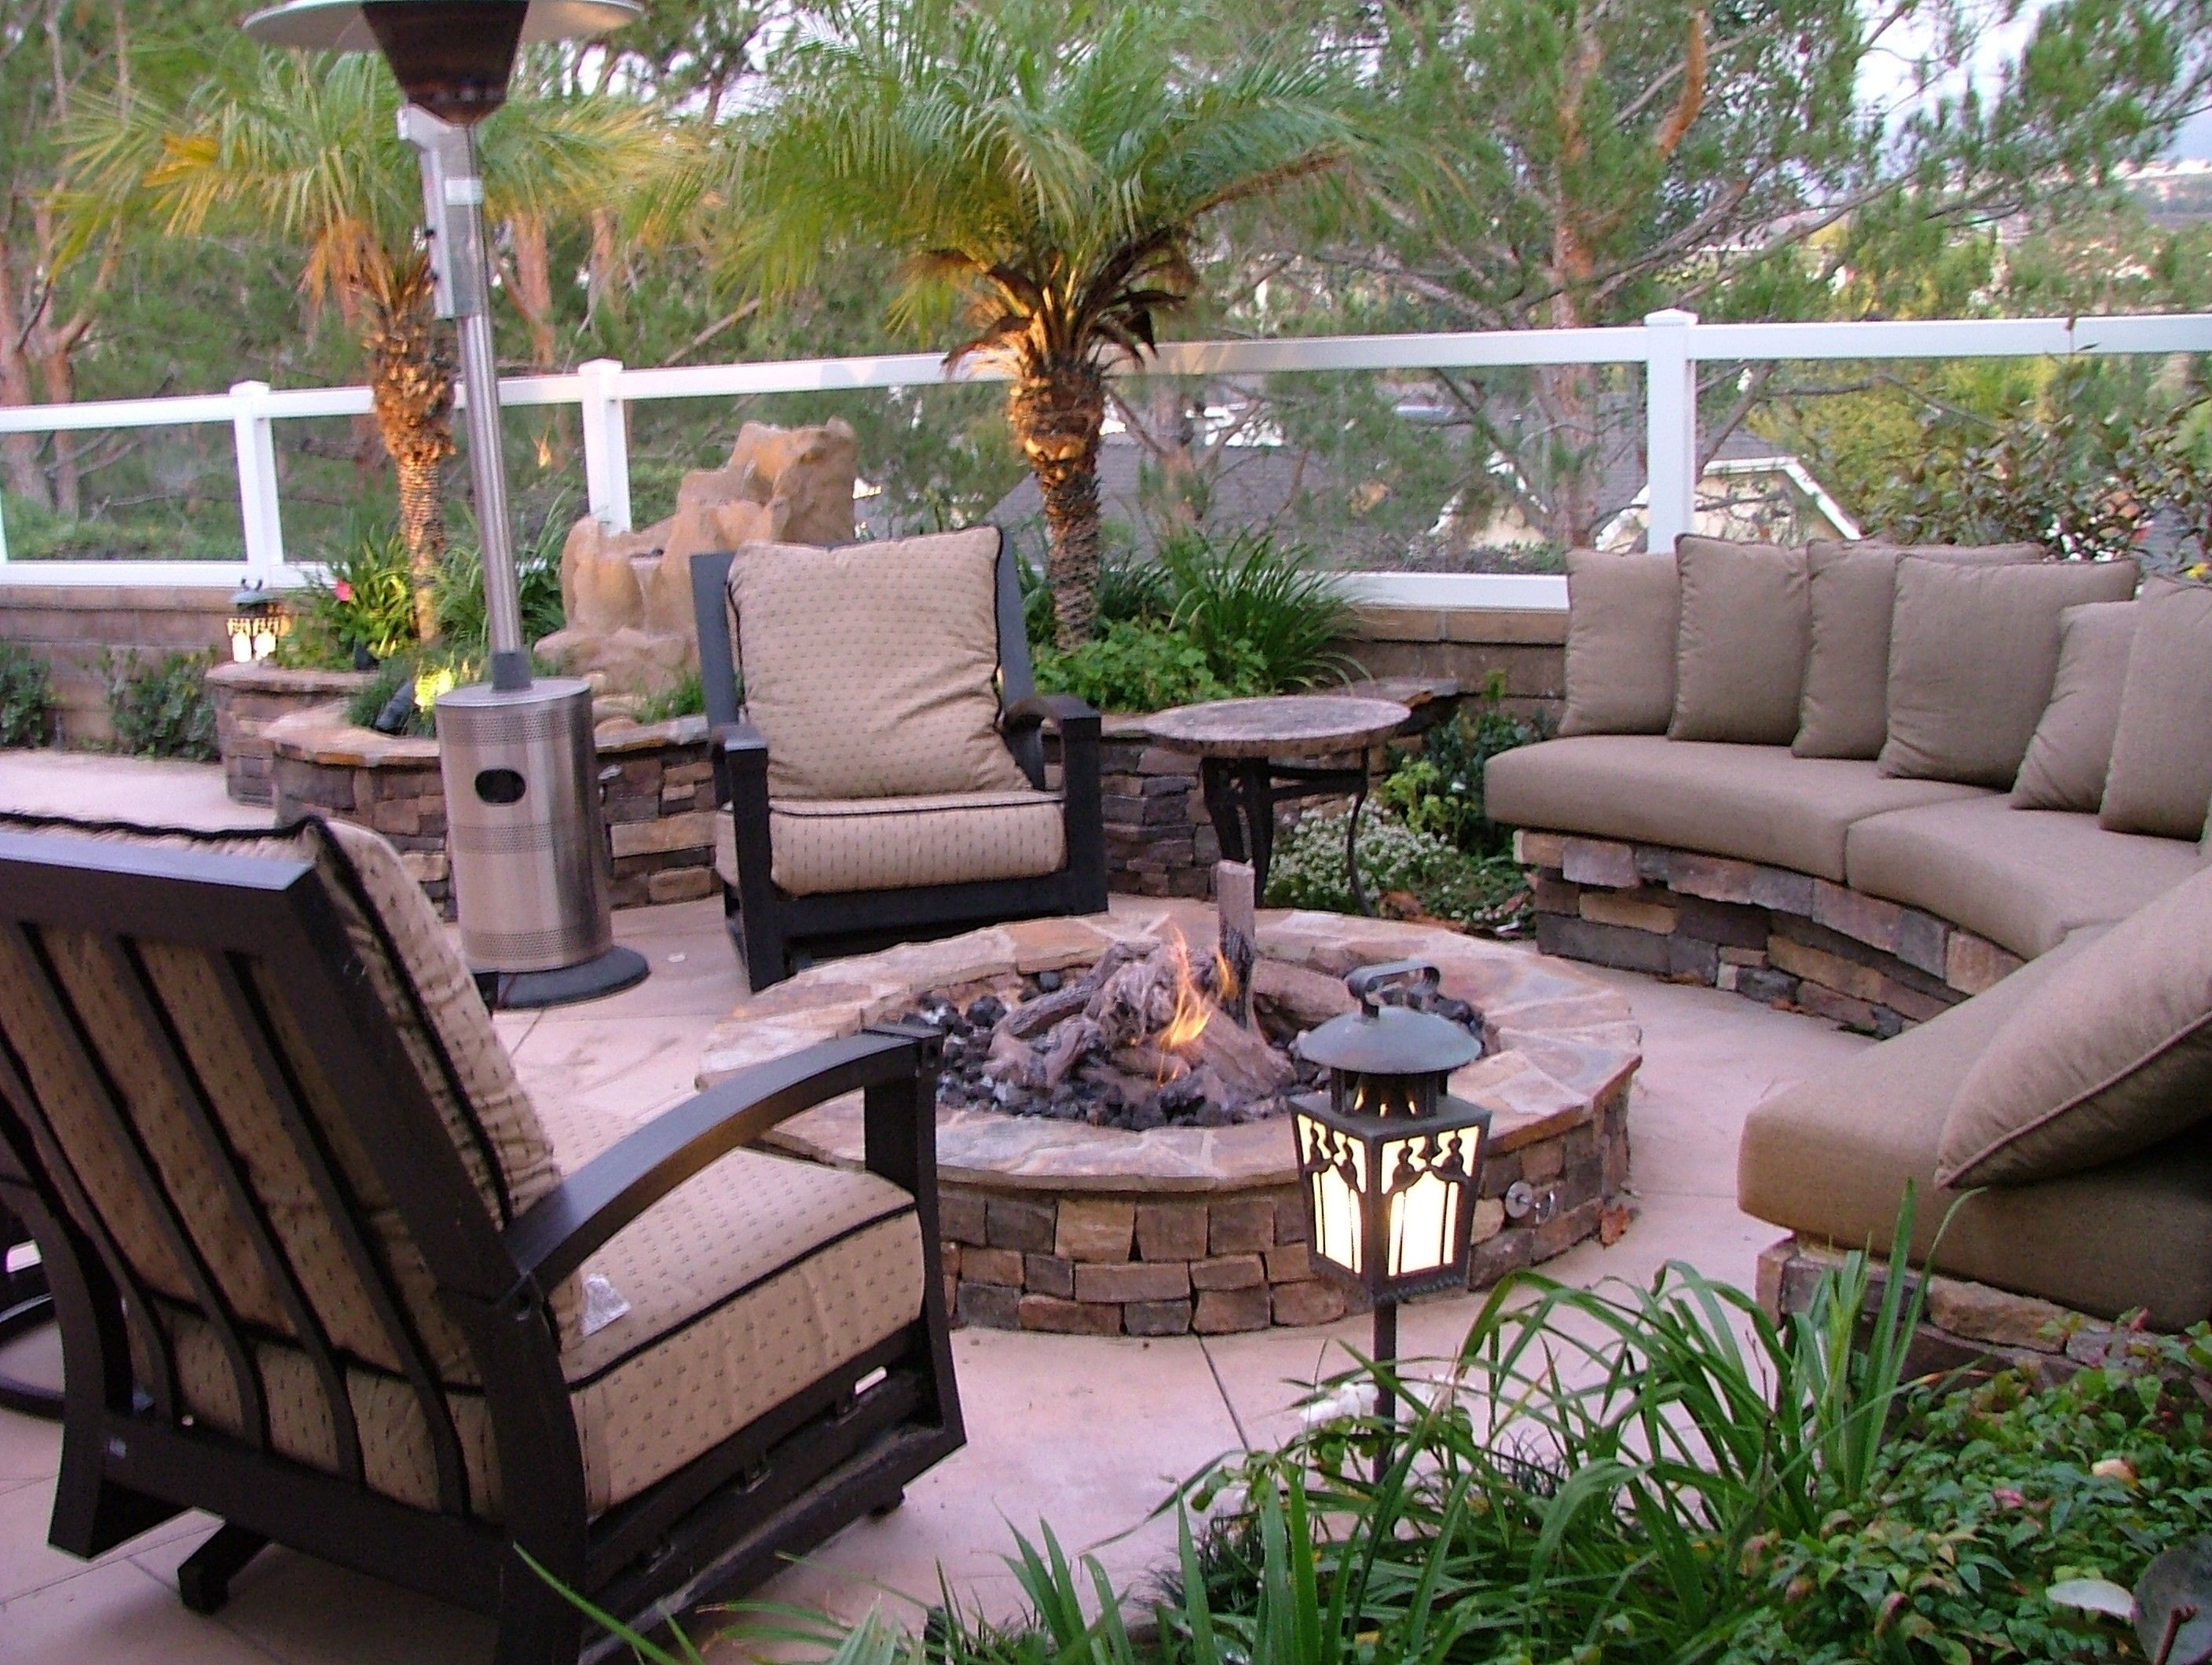 Backyard Landscaping Ideas With Fire Pit considering backyard fire pit heres what you should know Exterior Home Outdoor Fire Pit Design Ideas Home Fire Pit Diy